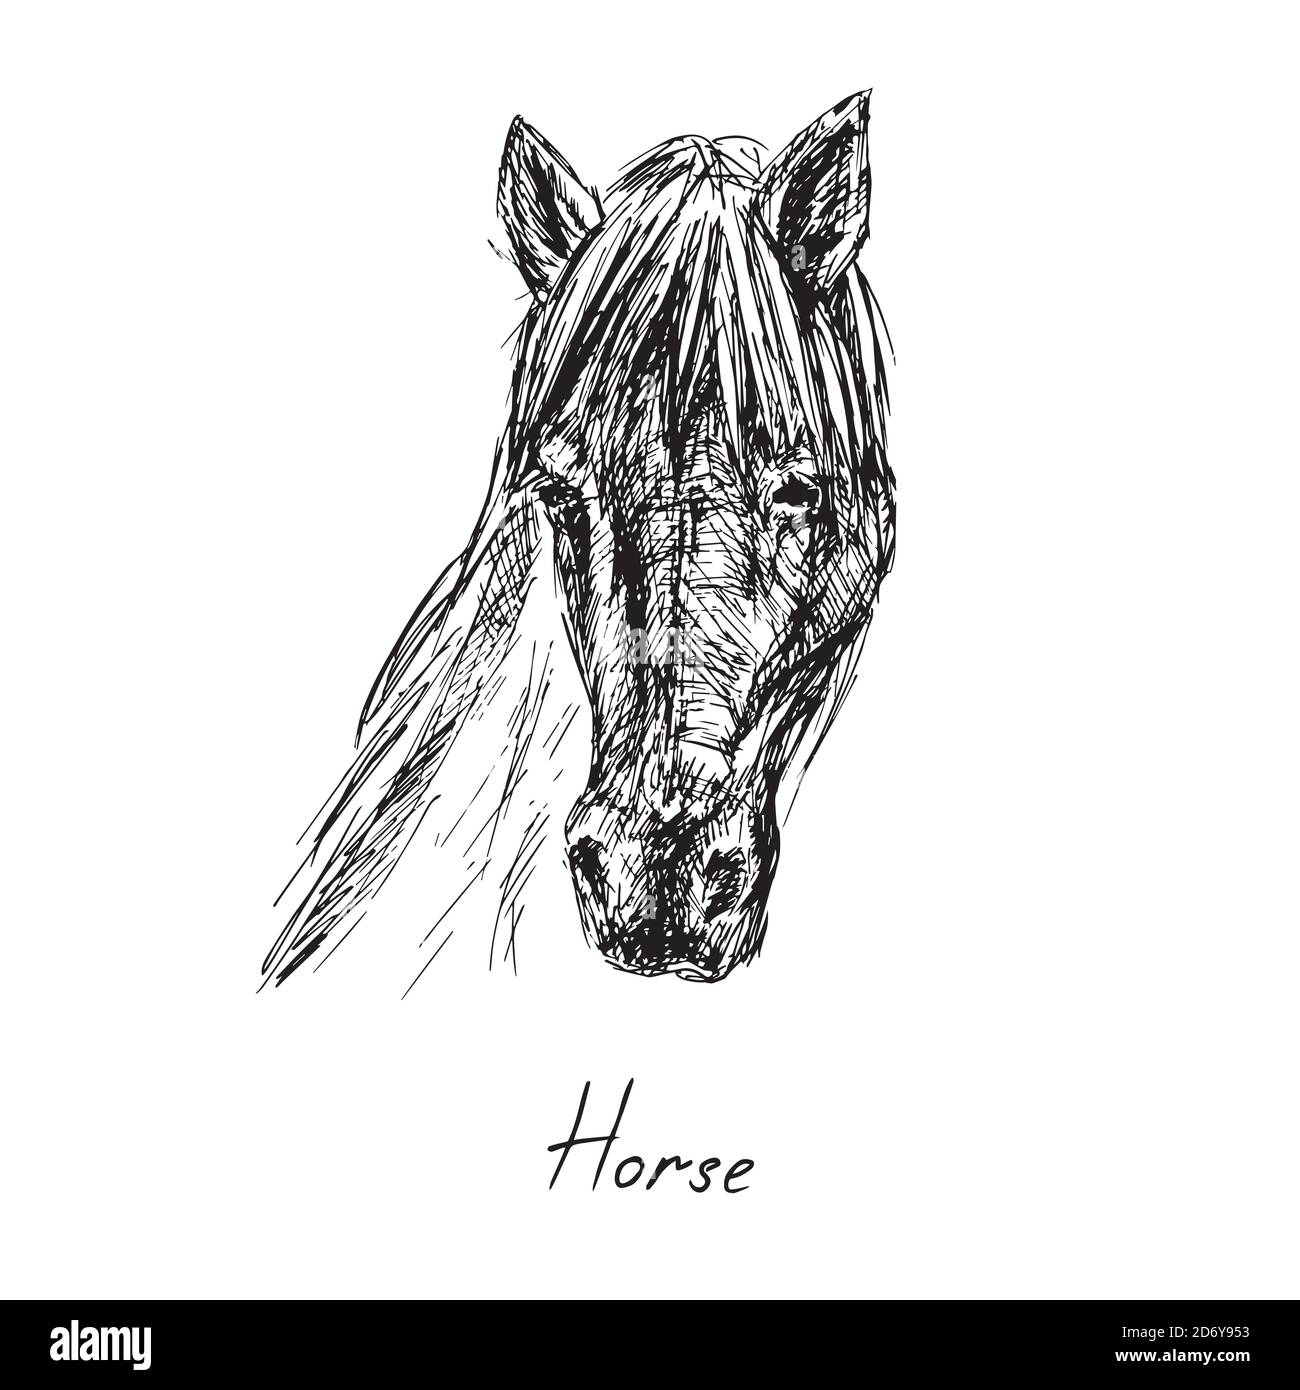 Horse Portrait Hand Drawn Ink Doodle Sketch Black And White Illustration Stock Photo Alamy